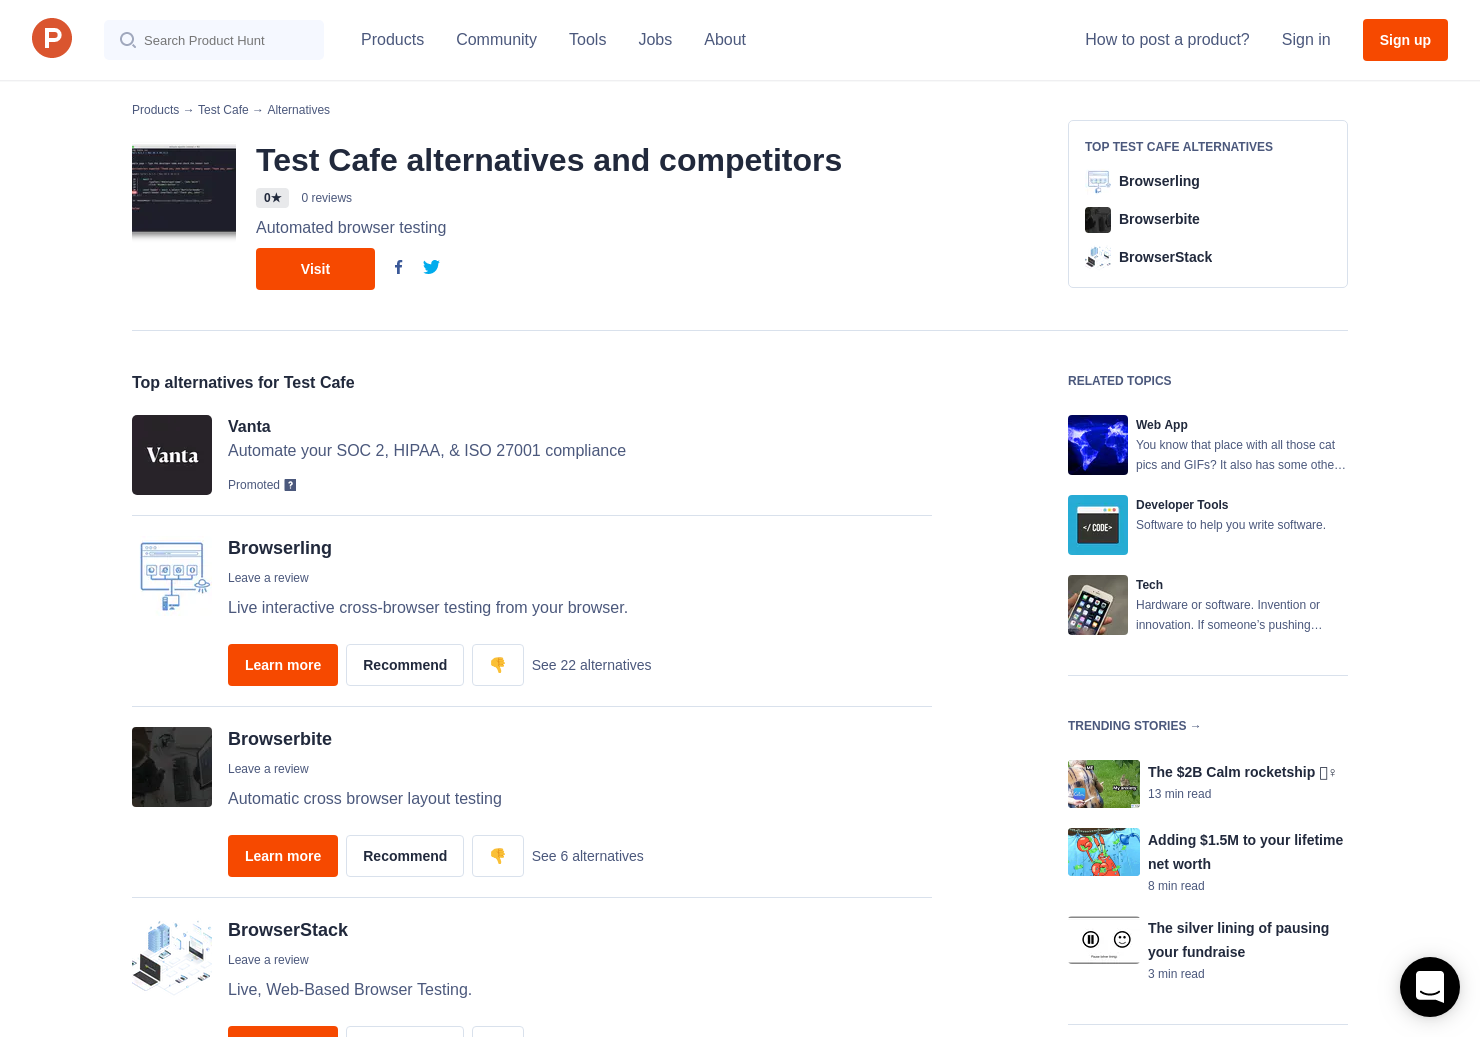 5 Alternatives to Test Cafe | Product Hunt